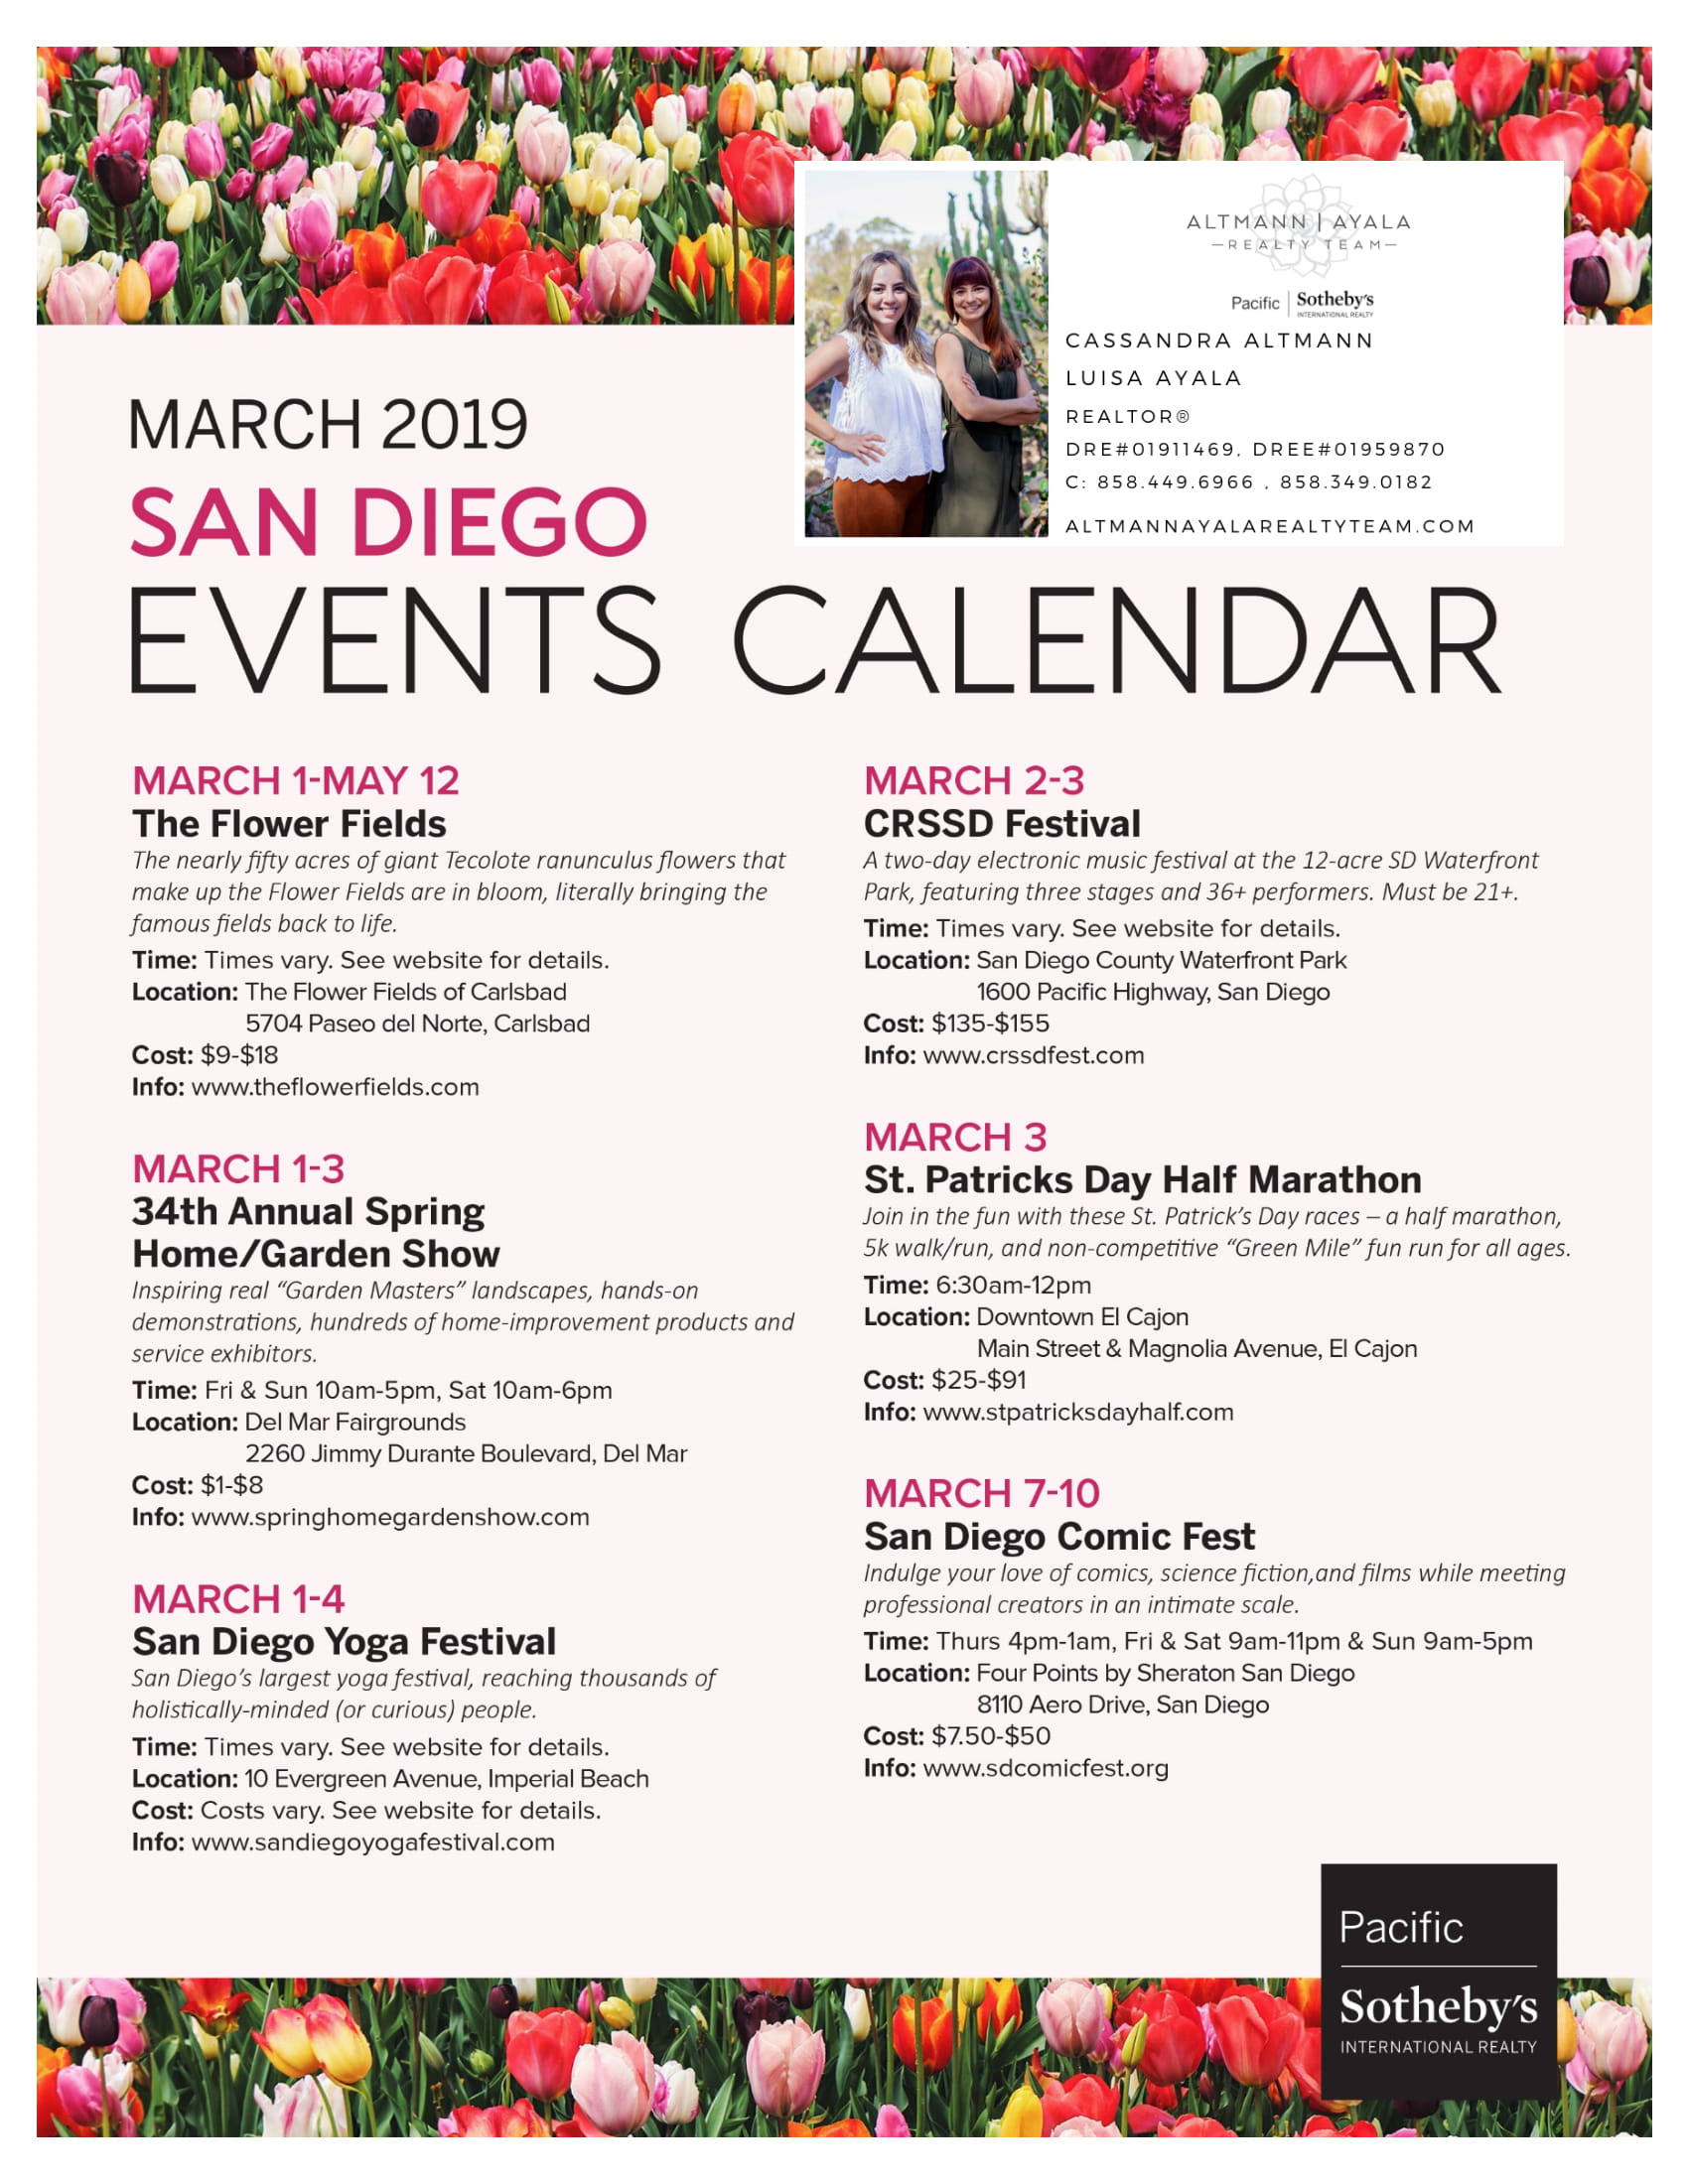 March 2019 San Diego Events Calendar